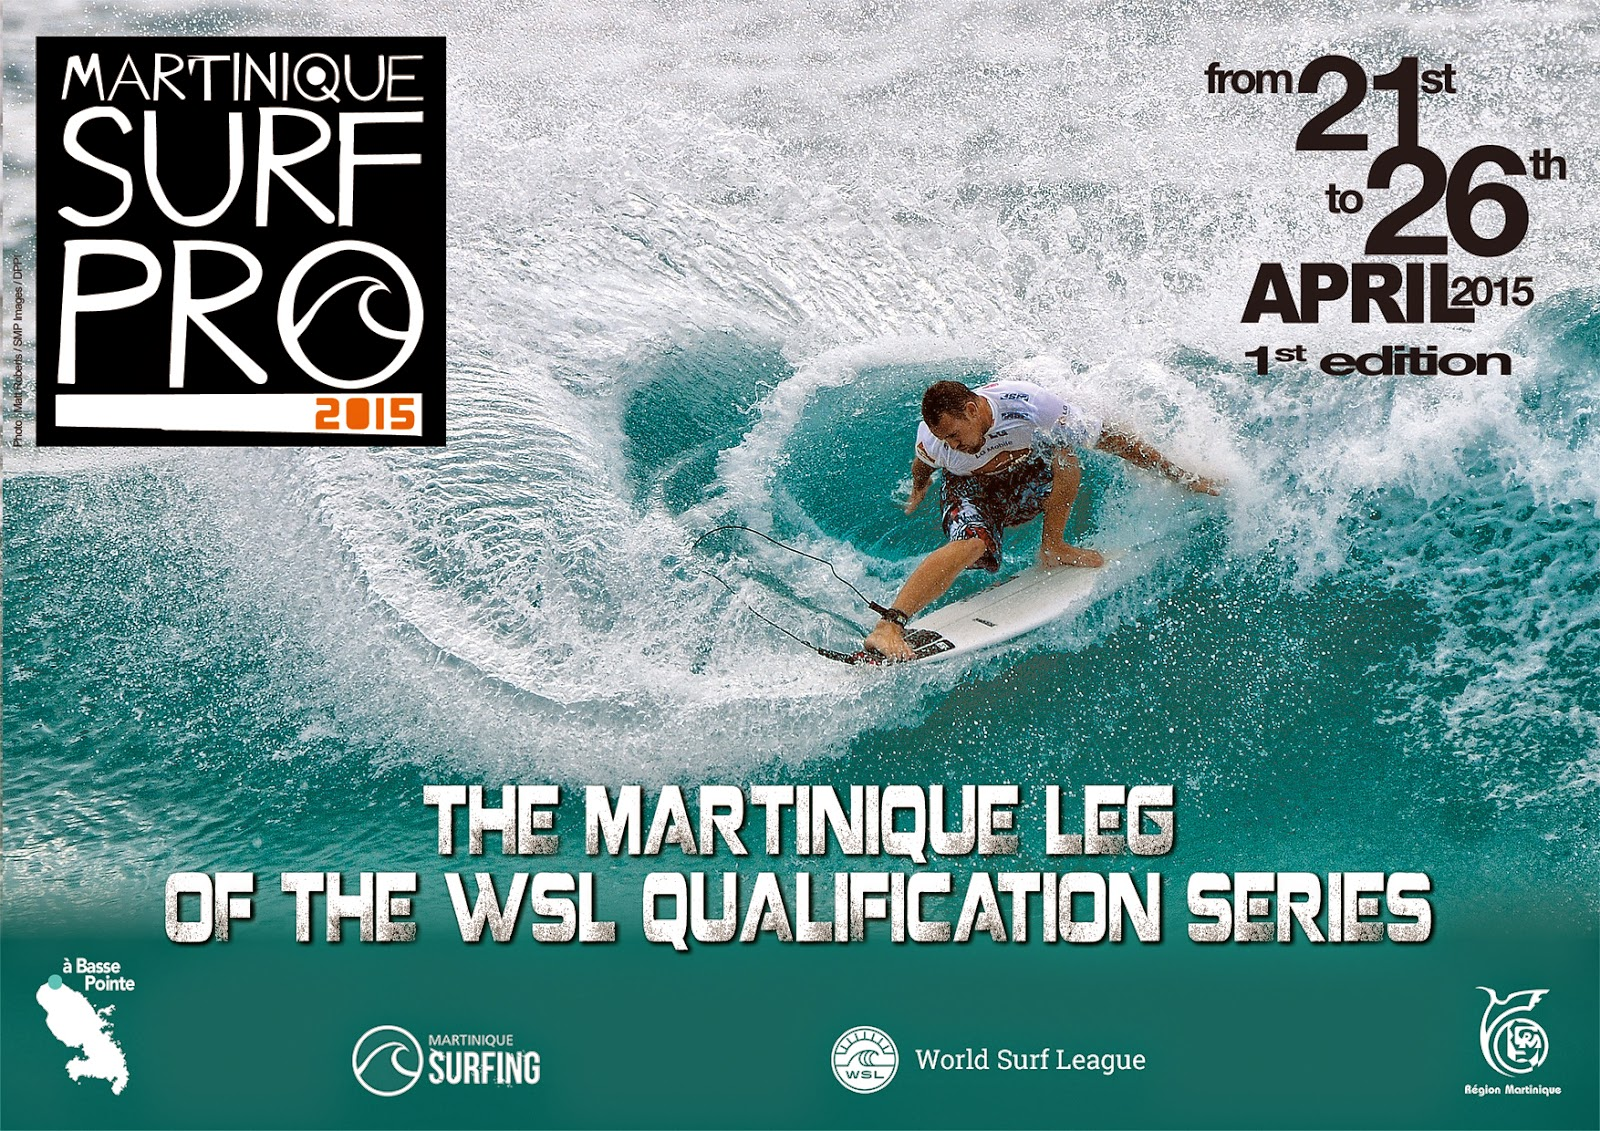 Travel 2 the Caribbean Blog: Martinique Surf Pro 2015 - Teaser Video